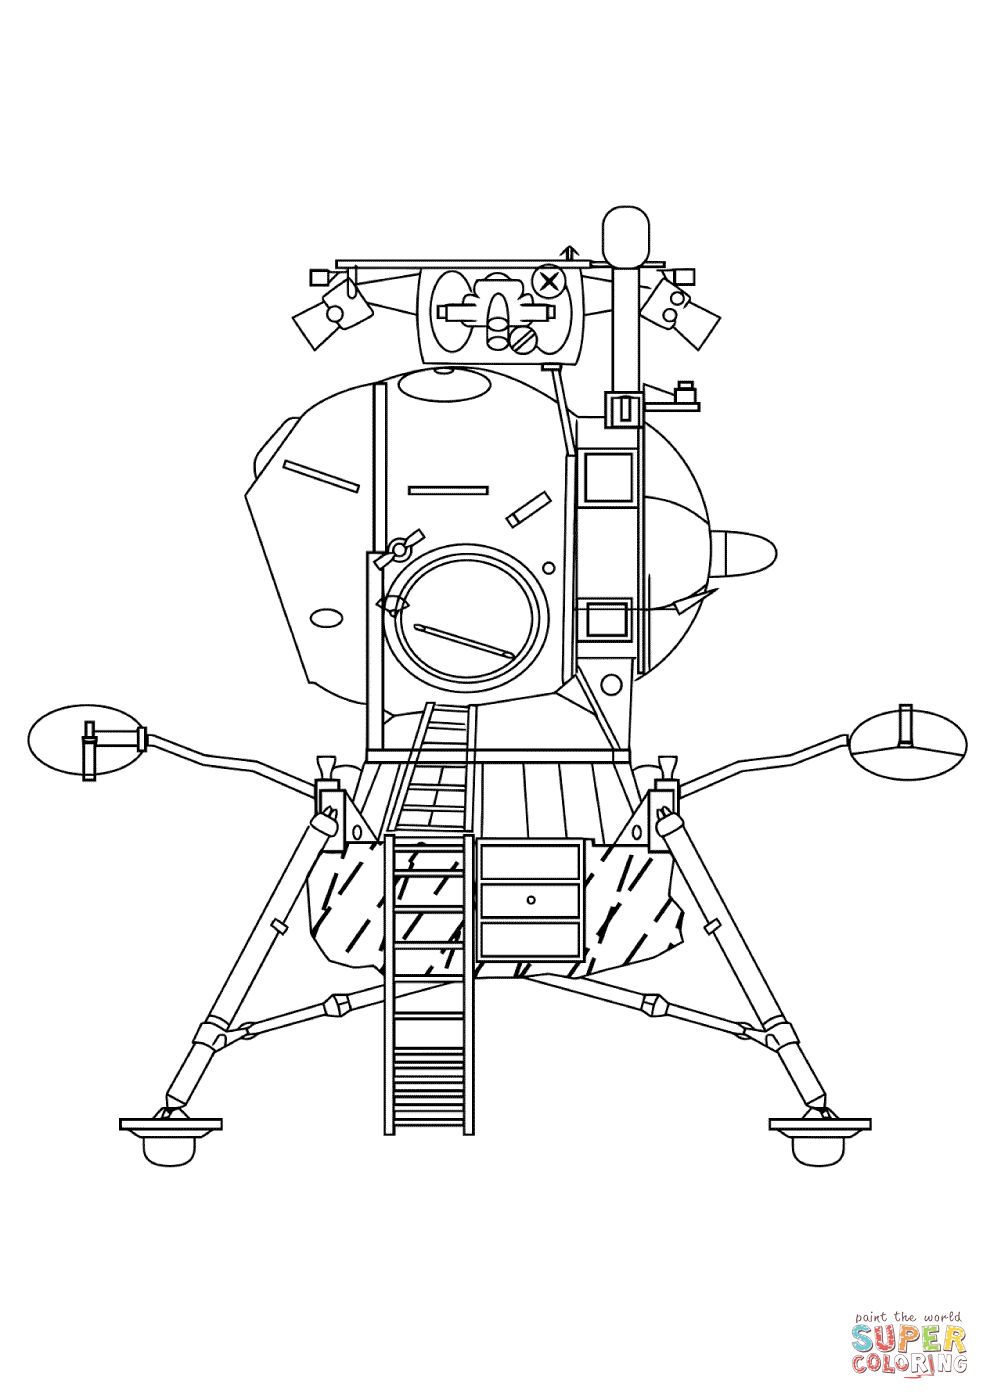 Click the lunar landing module coloring pages to view printable version or color it online patible with ipad and android tablets